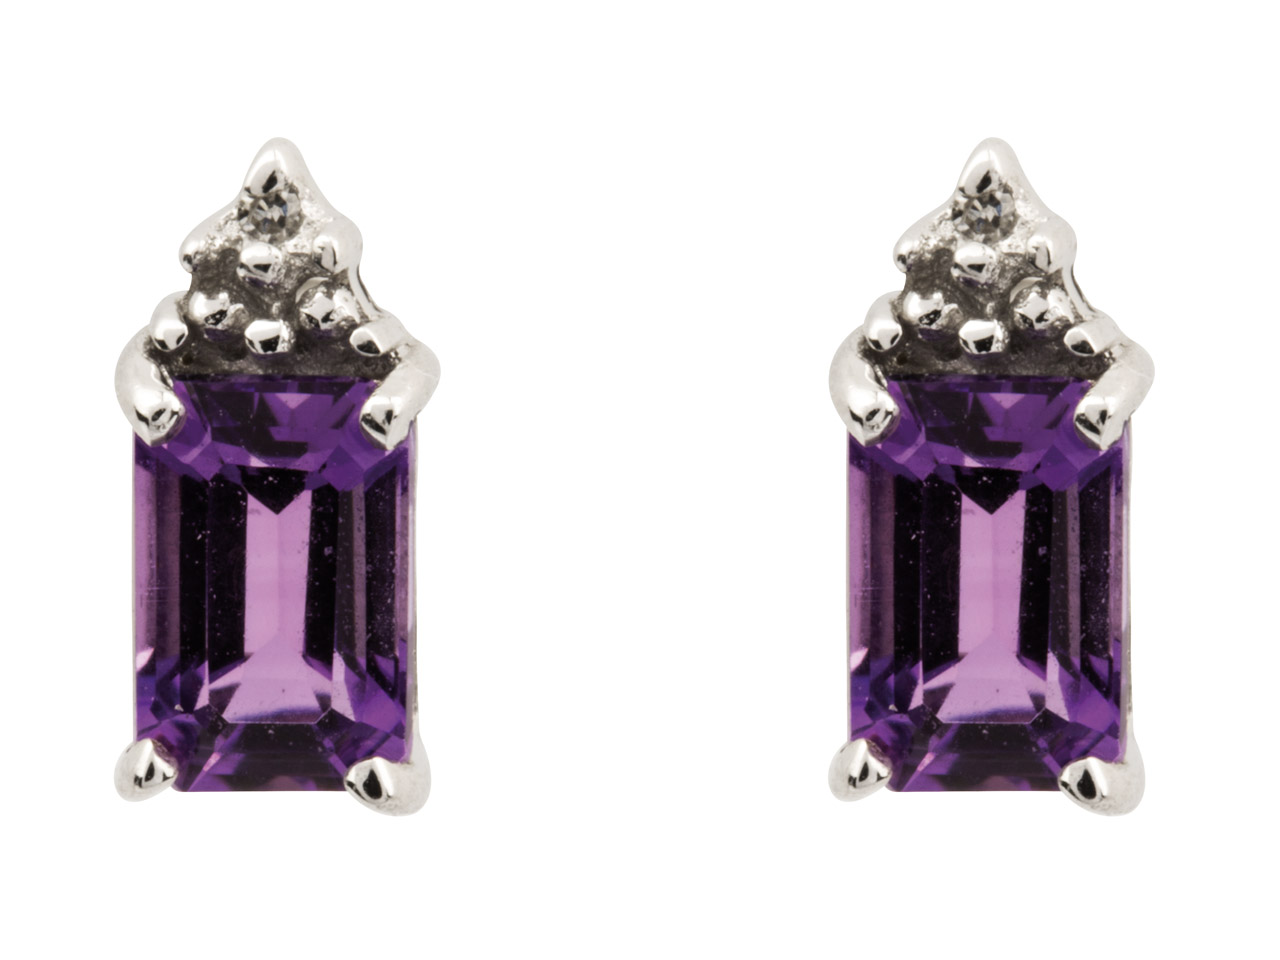 Sterling Silver Stud Earrings With Emerald Cut Amethyst And Diamond